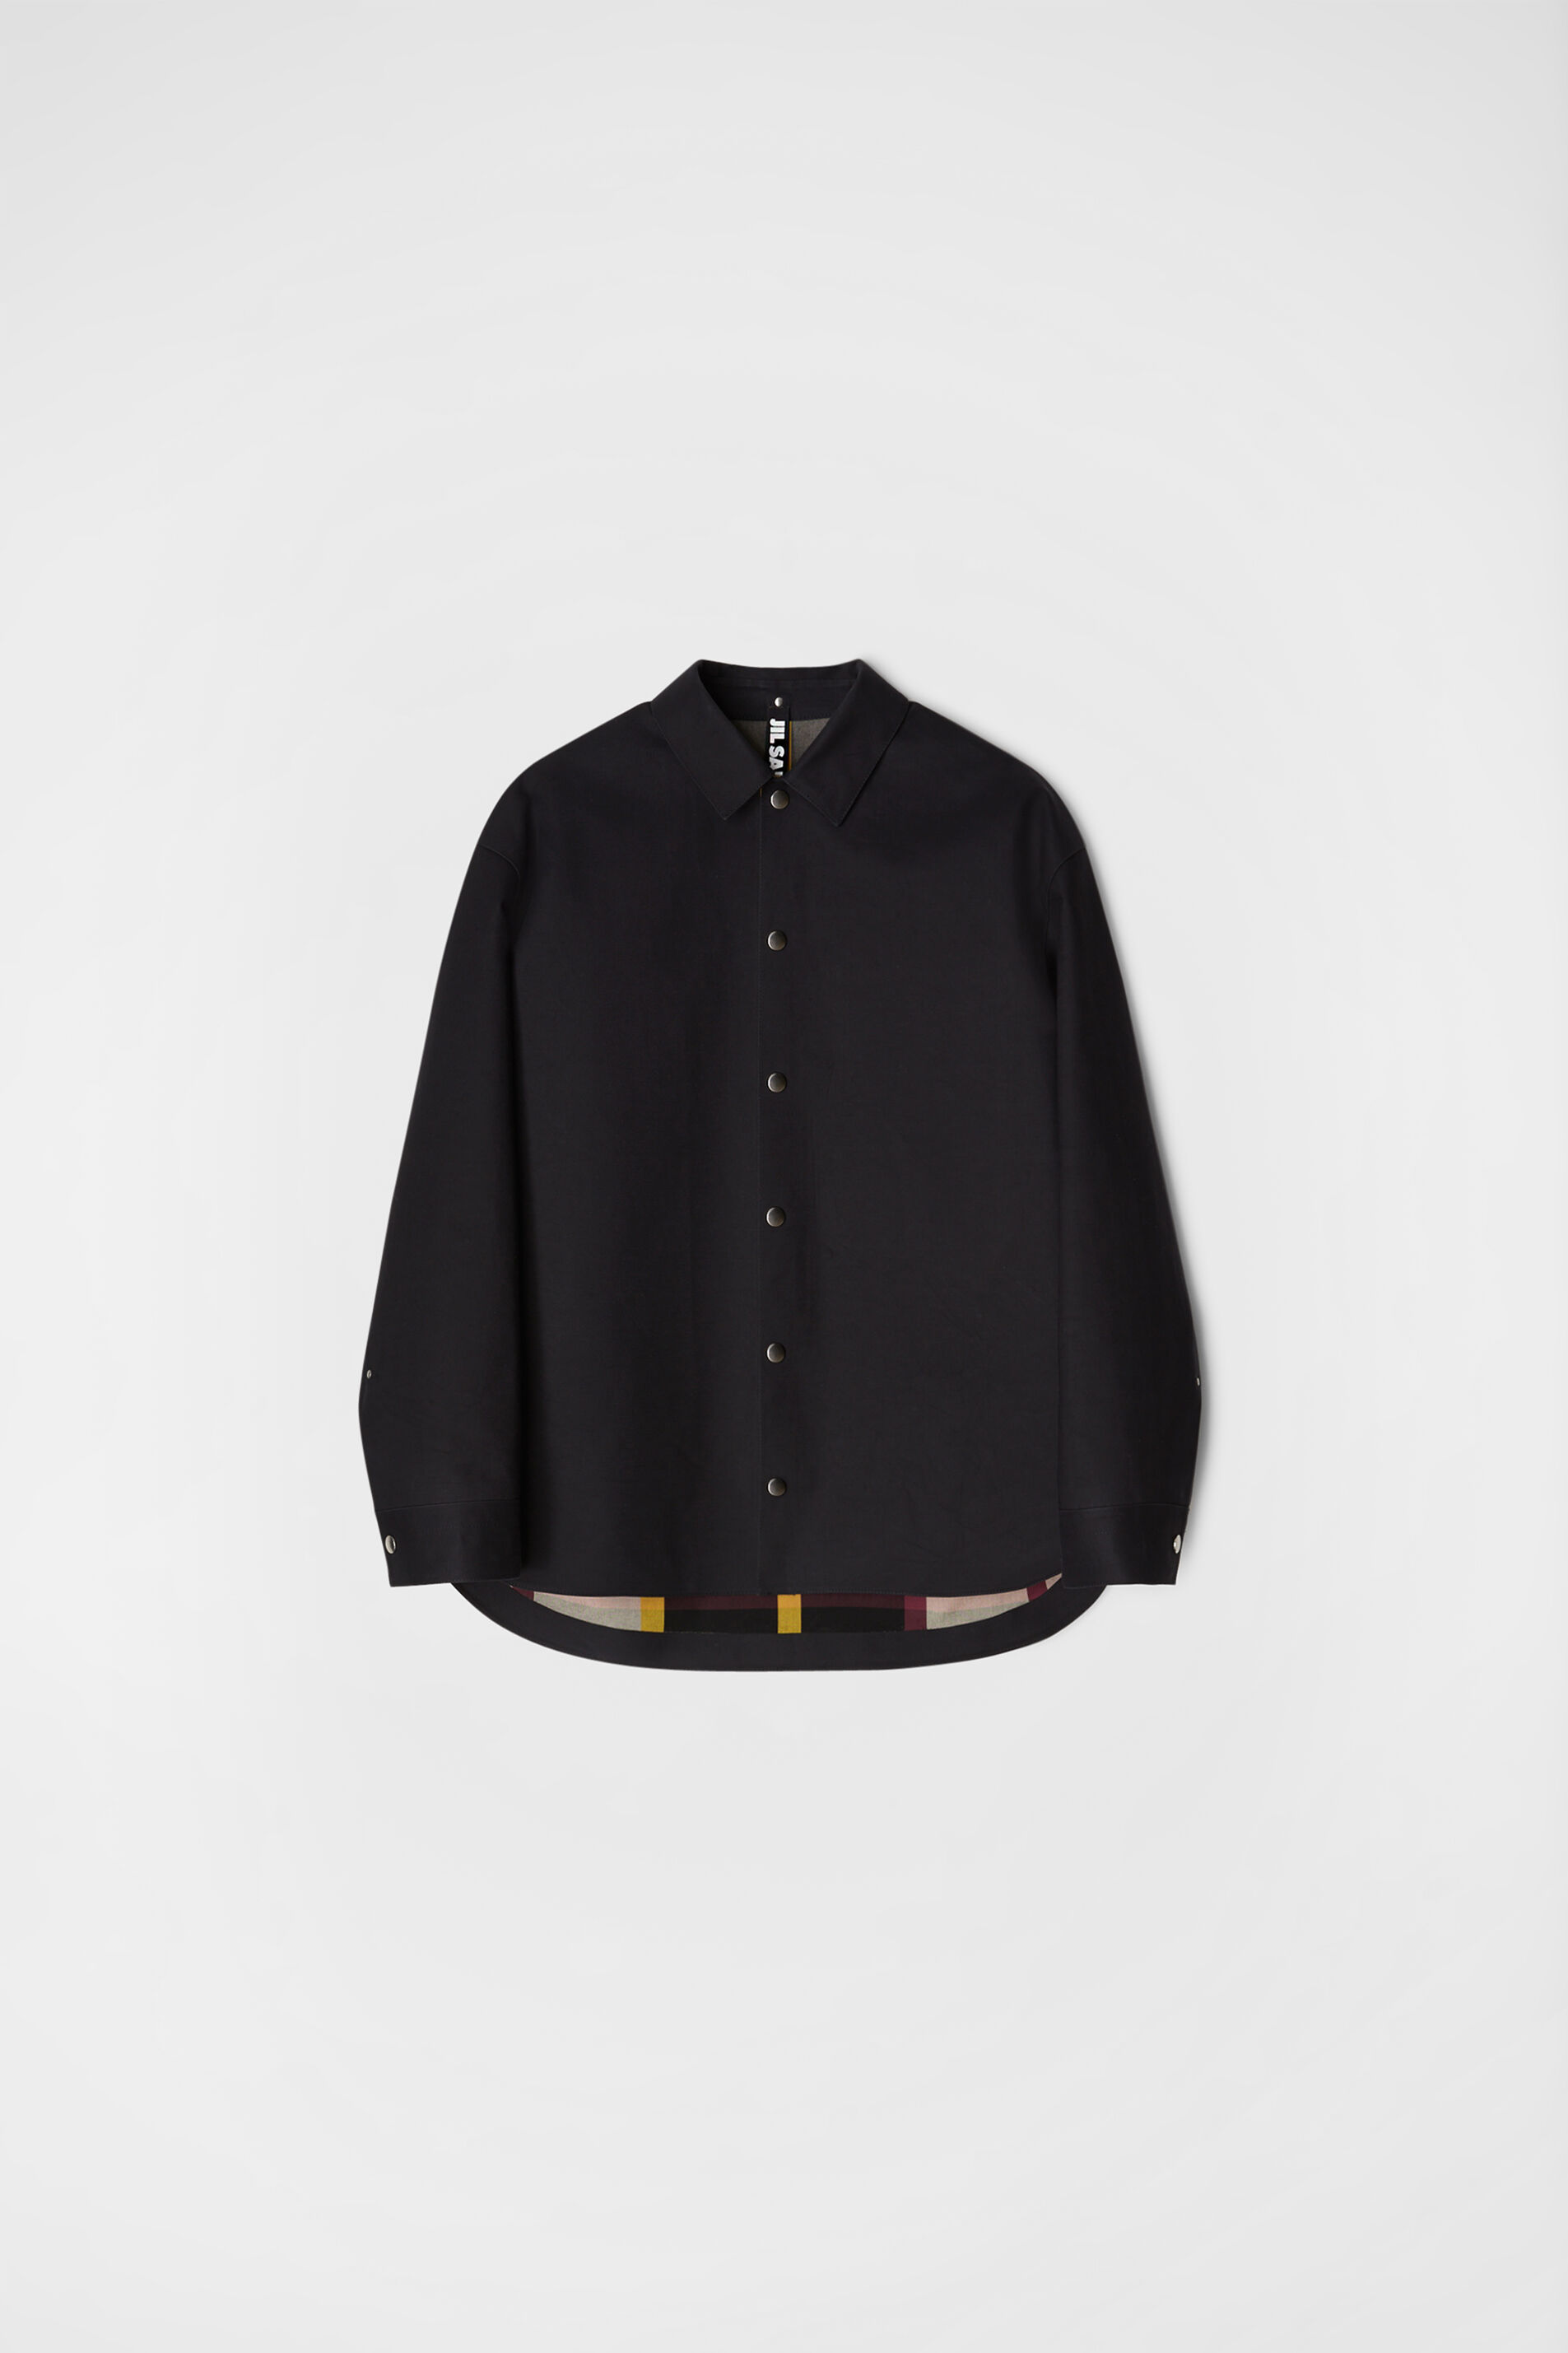 Mackintosh Jacket, black, large